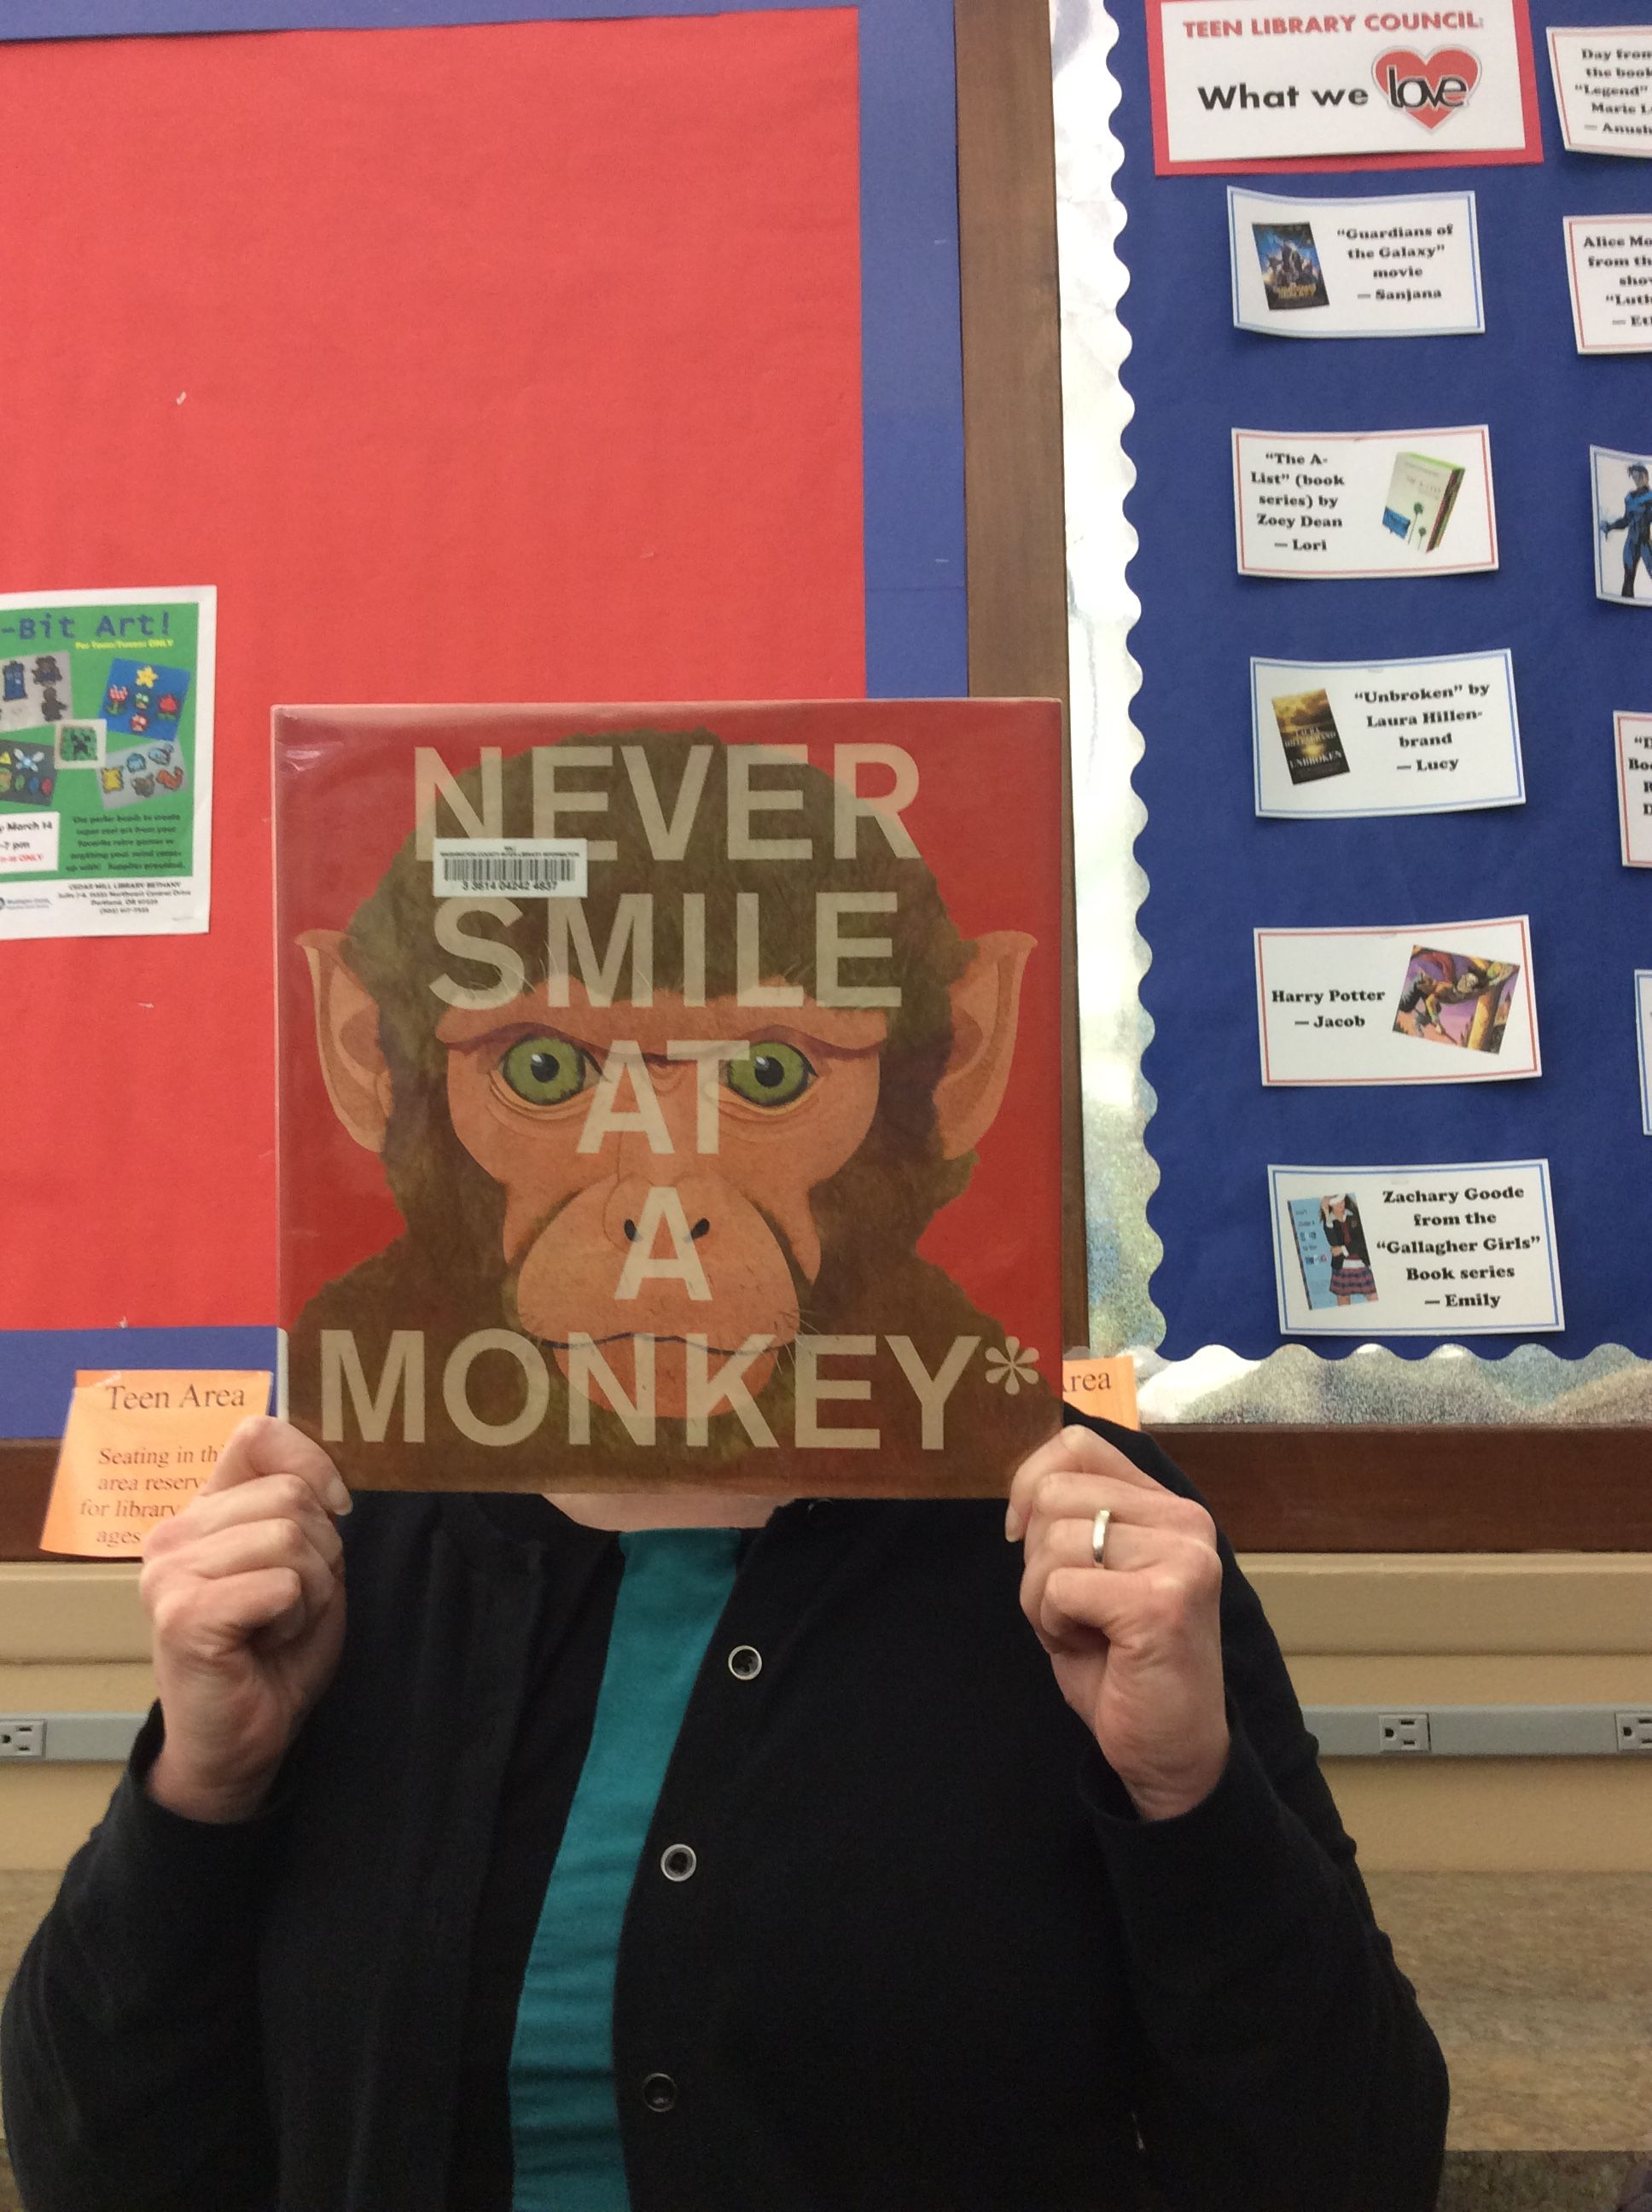 Never Smile at a Monkey* by Steve Jenkins Monkey